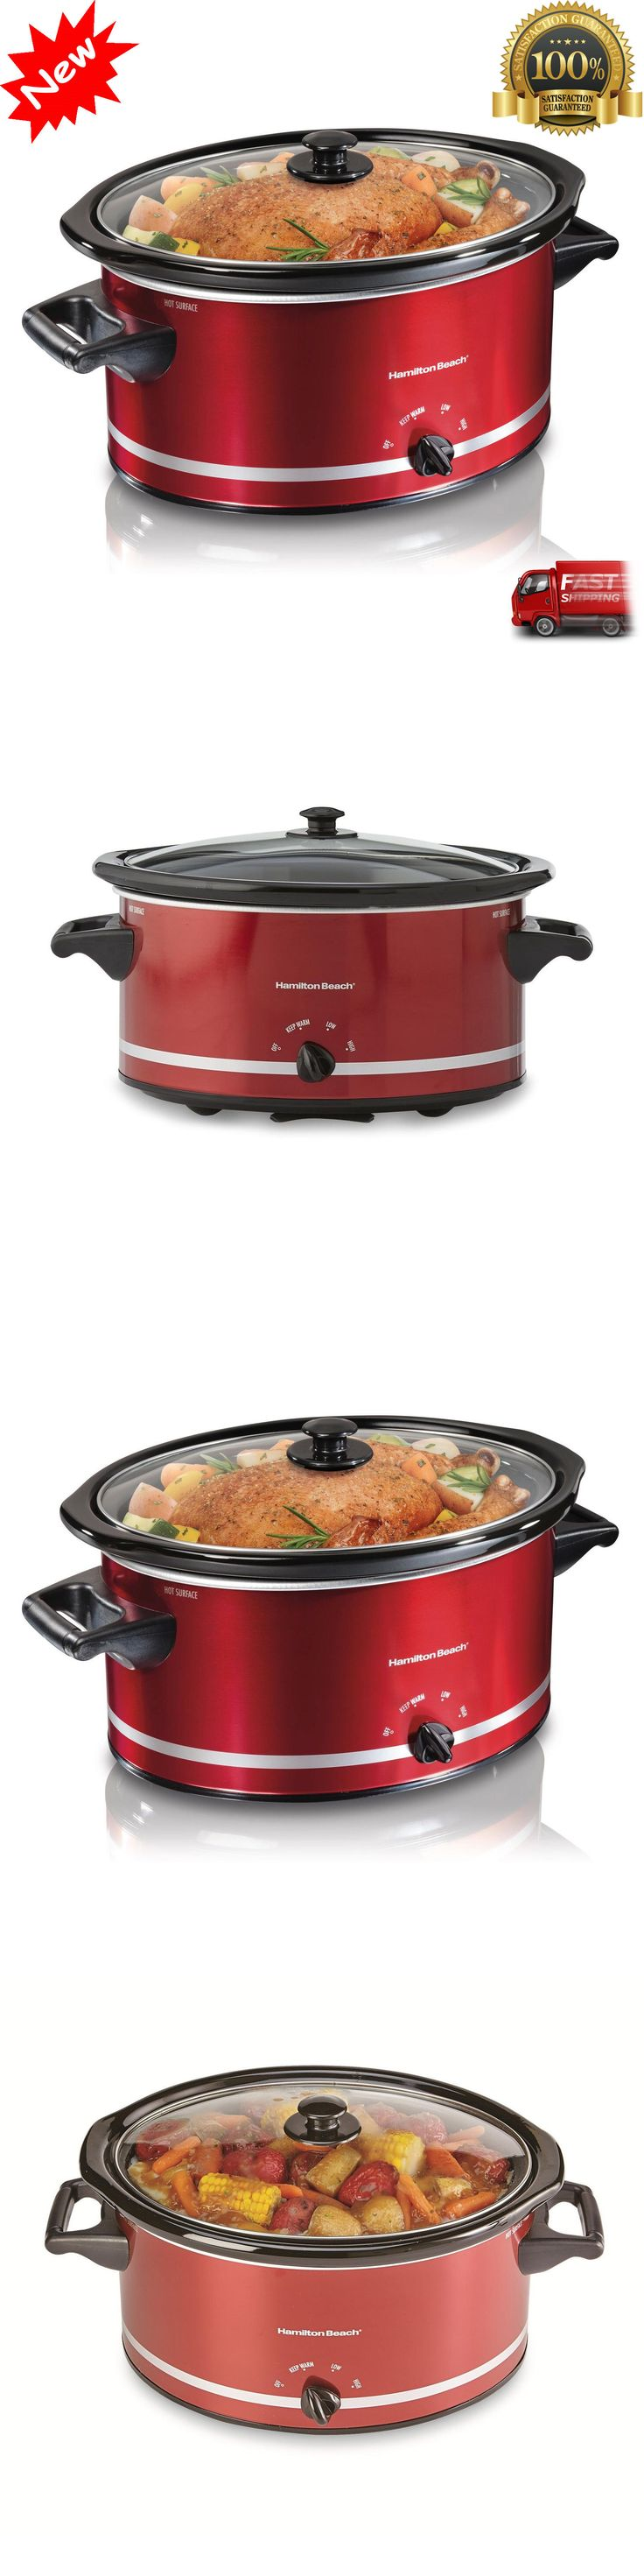 appliances: New Crockpot Hamilton Beach Slow Cooker Large 8 Quart Extra Red Oval Crock Pot BUY IT NOW ONLY: $89.97